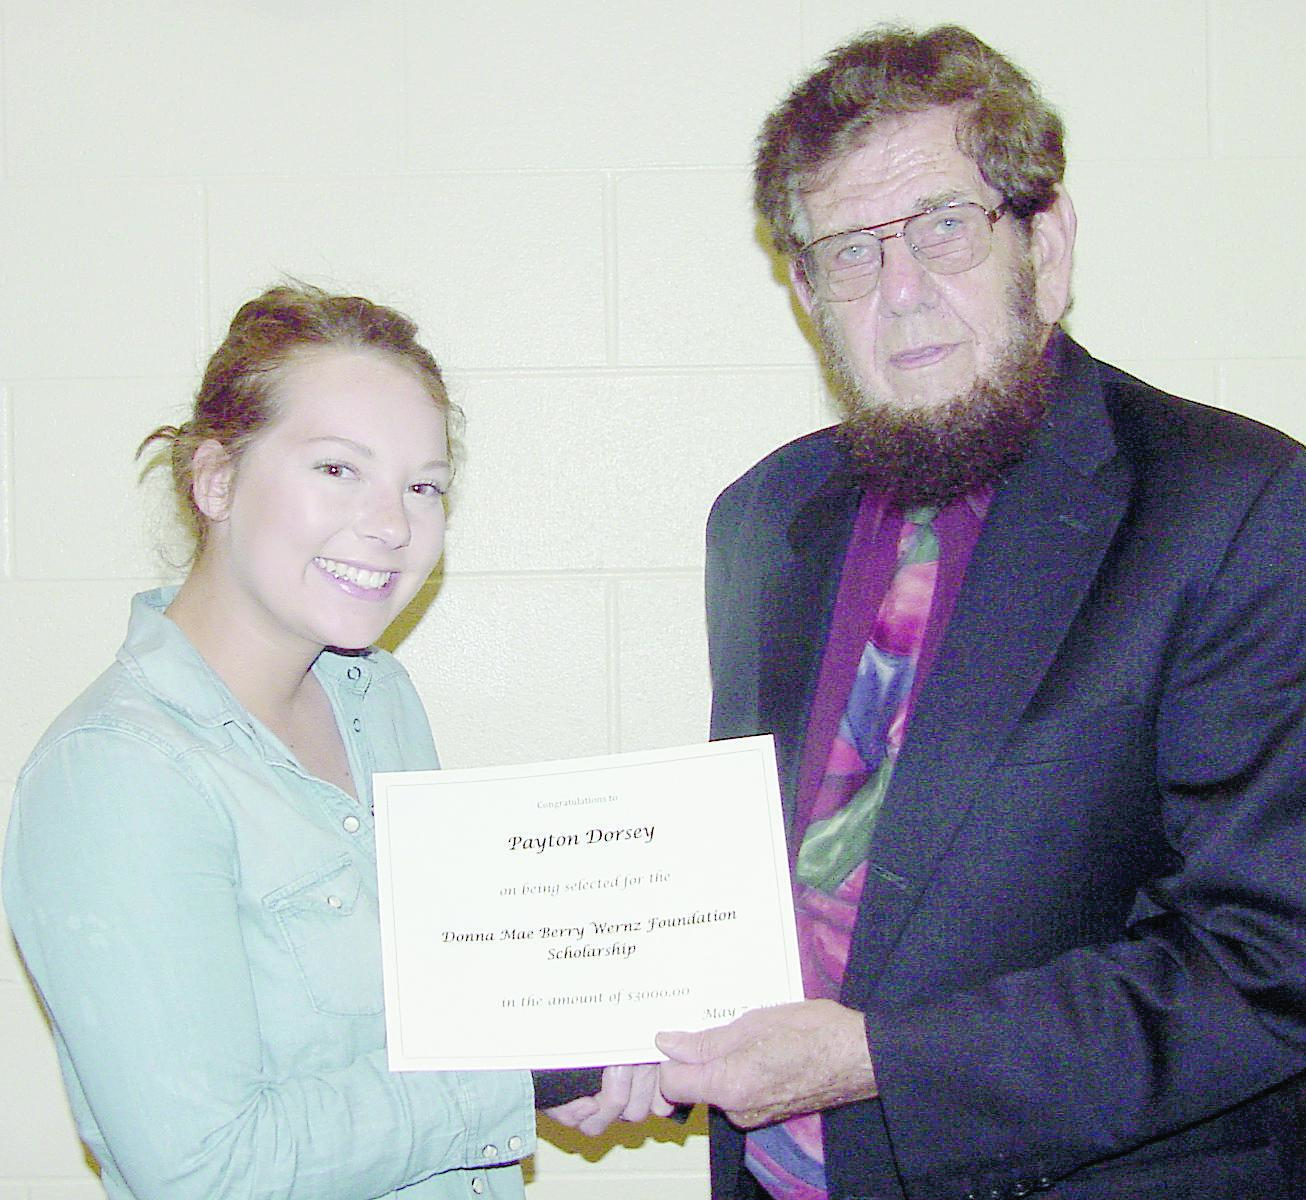 Payton Dorsey (left) received the Donna Mae Berry Wernz Foundation scholarship during the Eastern Local School District Awards Program held on May 7, 2017 at Eastern Local High School.  Payton received the three-thousand dollar ($3000.00) award in recognition of her achievements, and to assist her in pursuit of further academic studies in pre-medicine.  Payton is the daughter of Harold and Vicky Dorsey of Sardinia, and will attend Marietta College.  The Foundation was established in gratitude for the education provided to Donna Wernz at Ashridge Elementary and Russellville High School, and to recognize annually an outstanding senior at Eastern Local High School for their accomplishments.  The award was presented by Stanley Wernz.